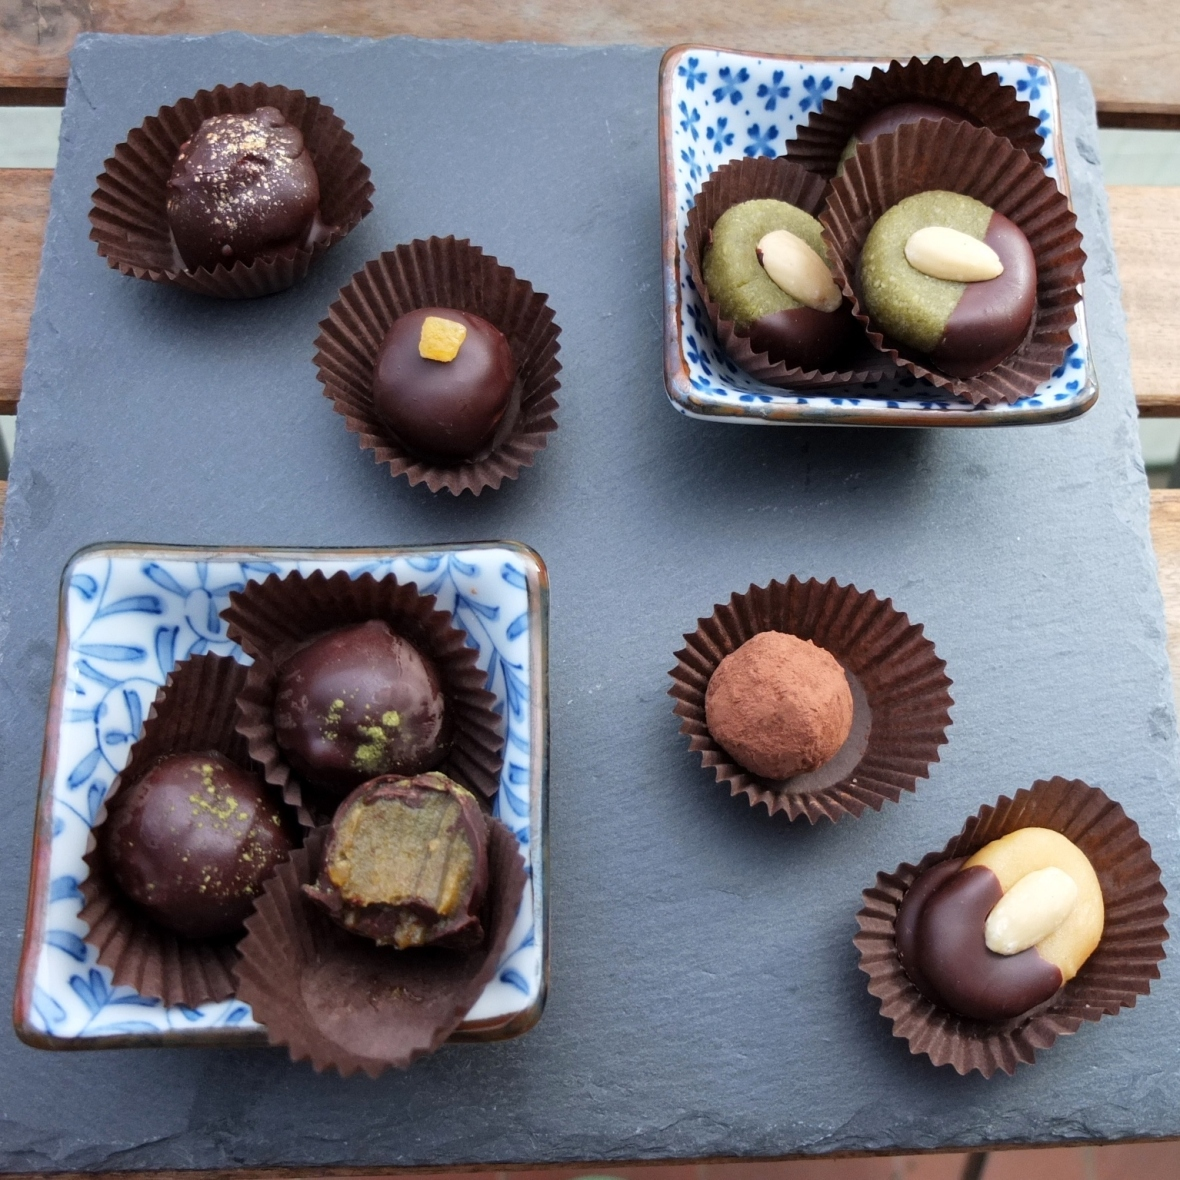 A variety of healthier marzipans and caramels